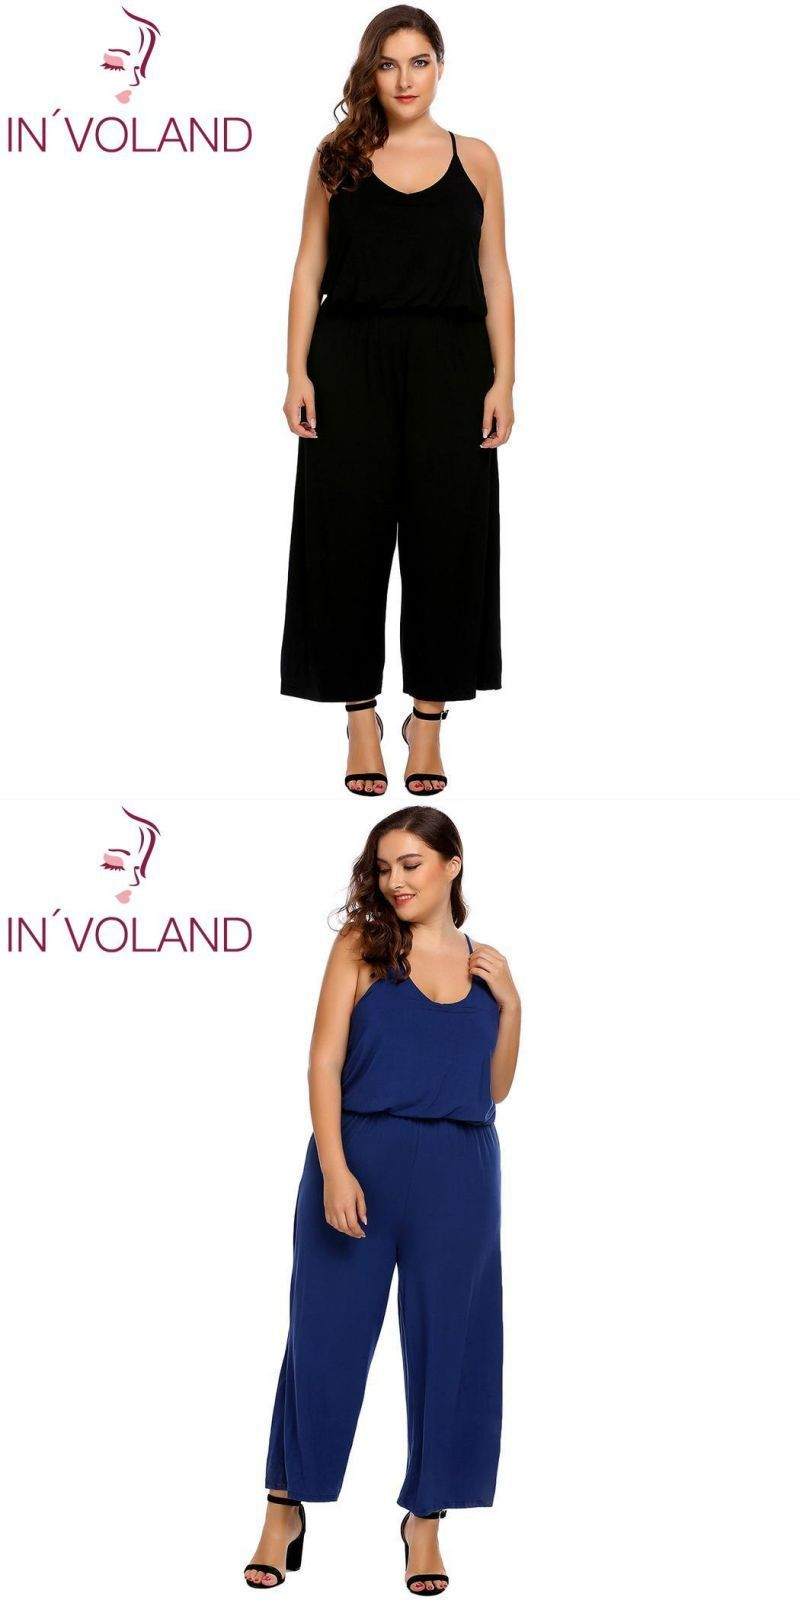 a91f6083429 In voland large size xl-5xl women jumpsuit 2018 new sexy spaghetti strap  sleeveless solid ruffle loose plus rompers big size  cotton  jumpsuits   casual ...